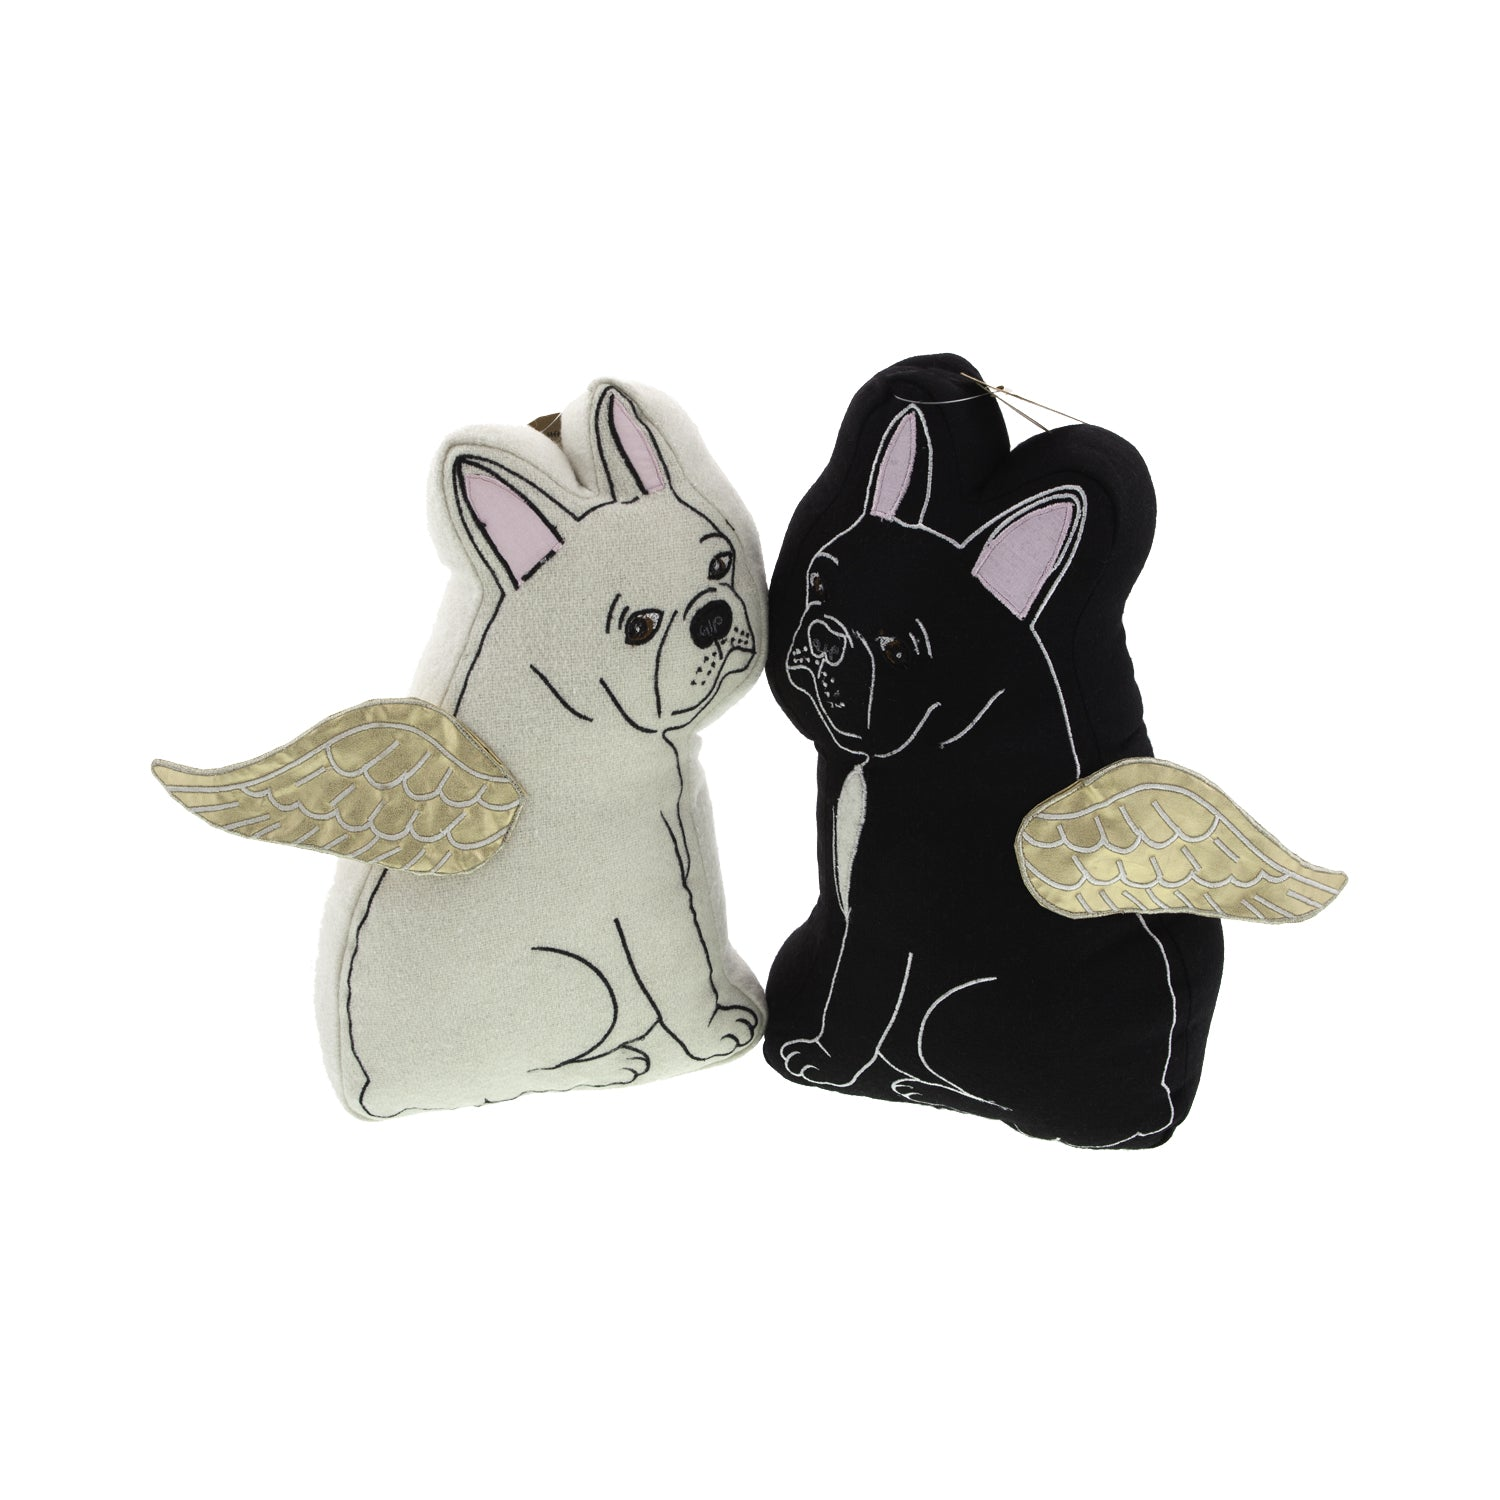 Dog Lover Gifts available at Dog Krazy Gifts – Black and Cream French Bulldog Cushions – Gorgeously detailed and handcrafted luxury cushions part of the French Bulldog Range available from Dog Krazy Gifts